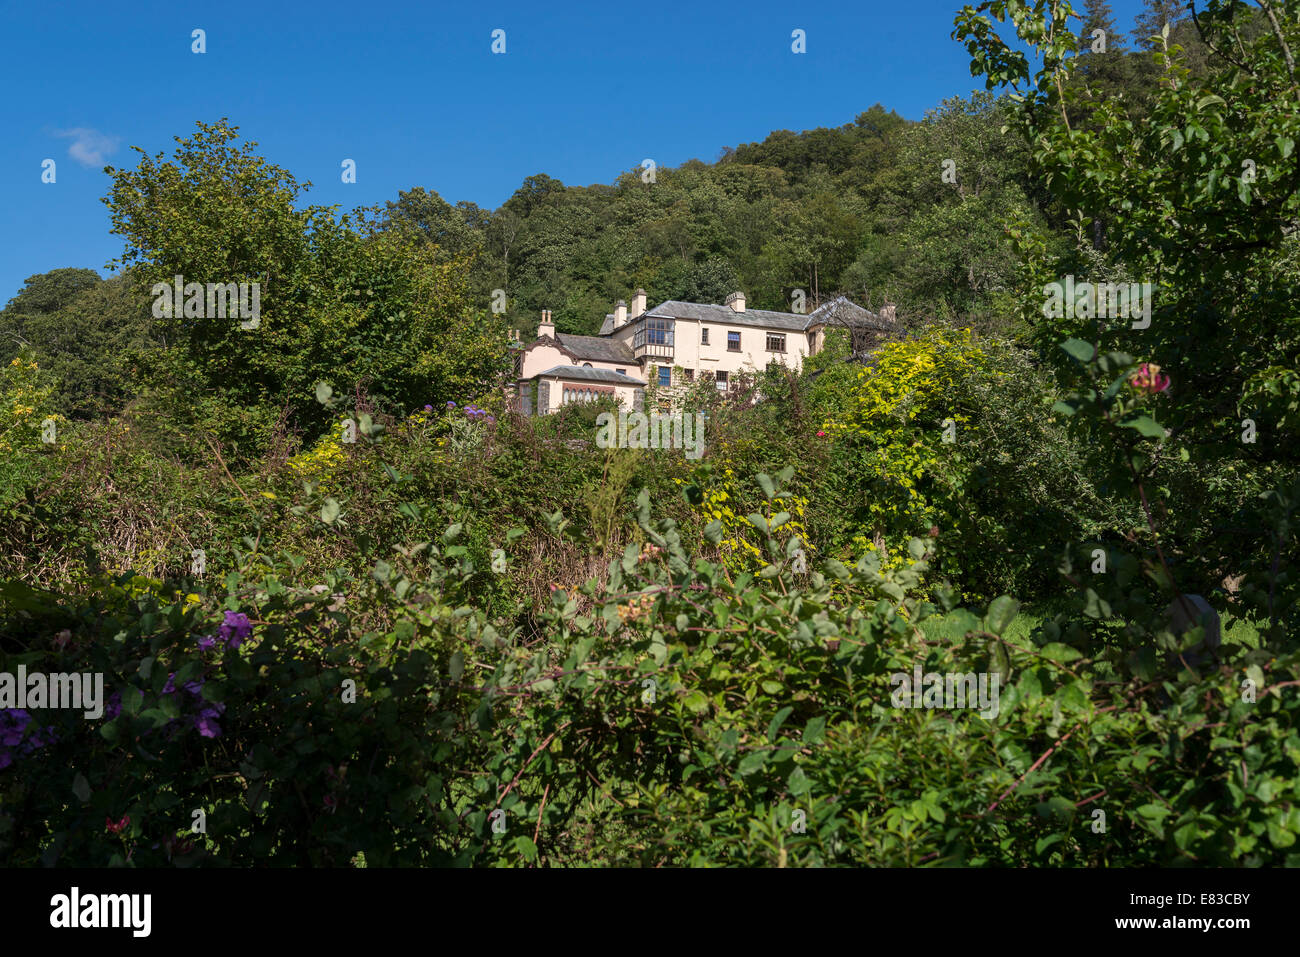 John Ruskin house named Brantwood on lake Coniston Cumbria North West England. - Stock Image